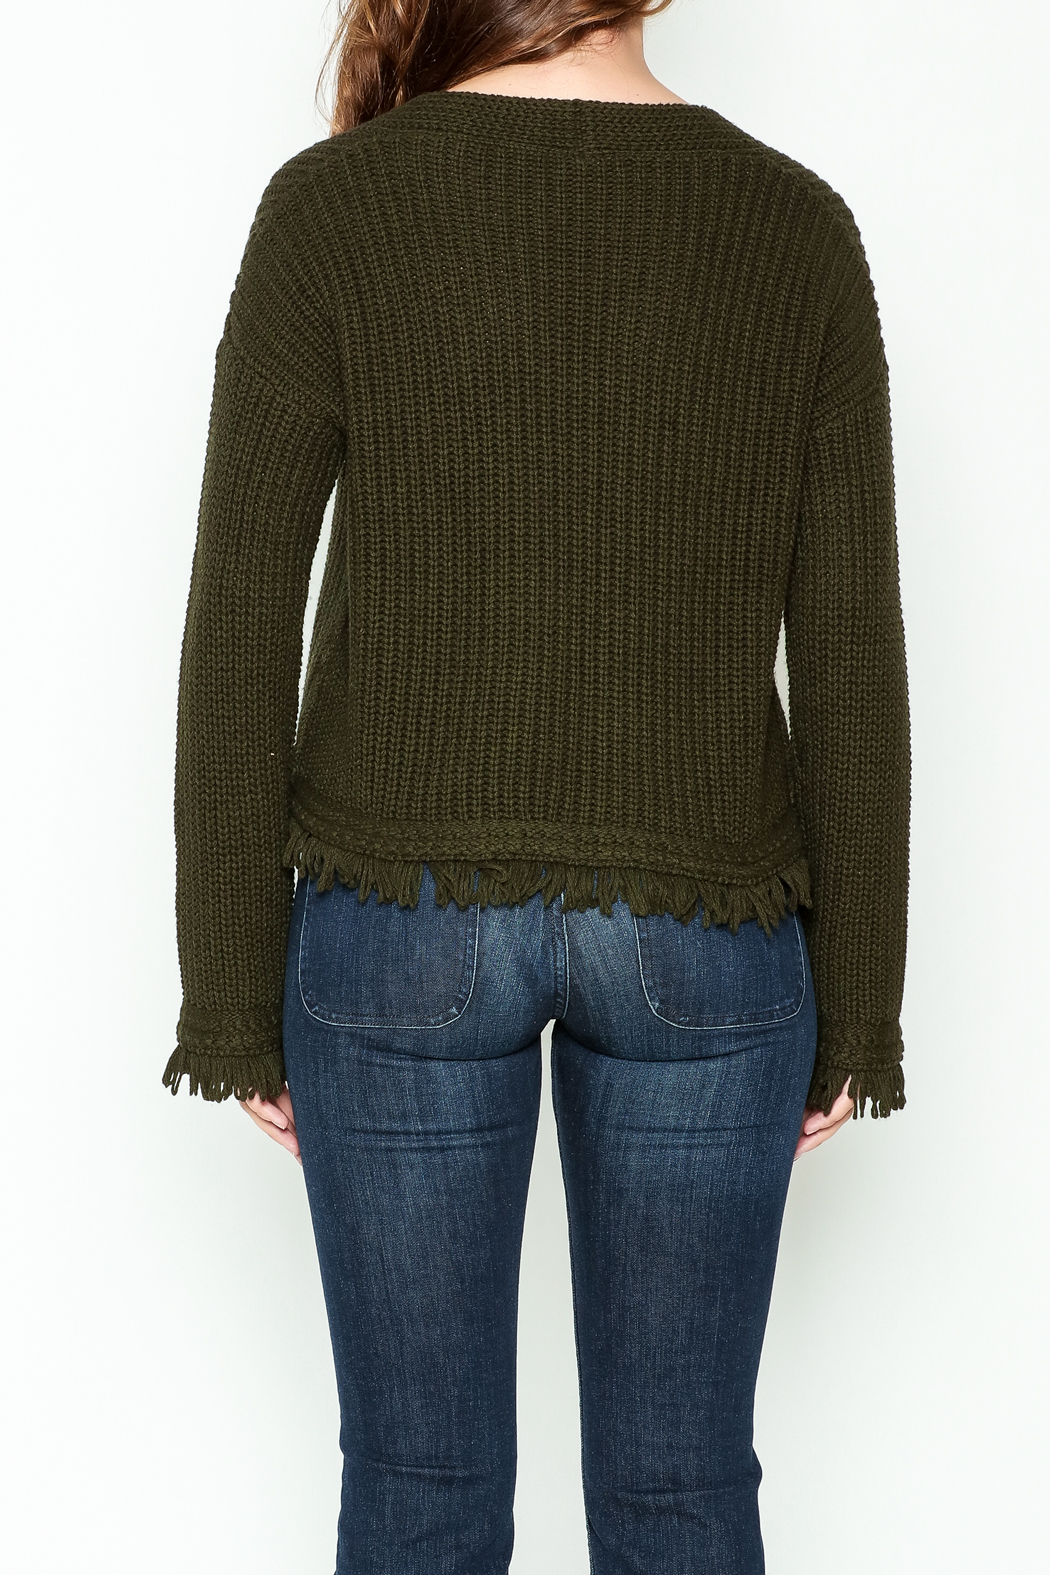 Margaret O'Leary Maeve Pullover Top - Back Cropped Image